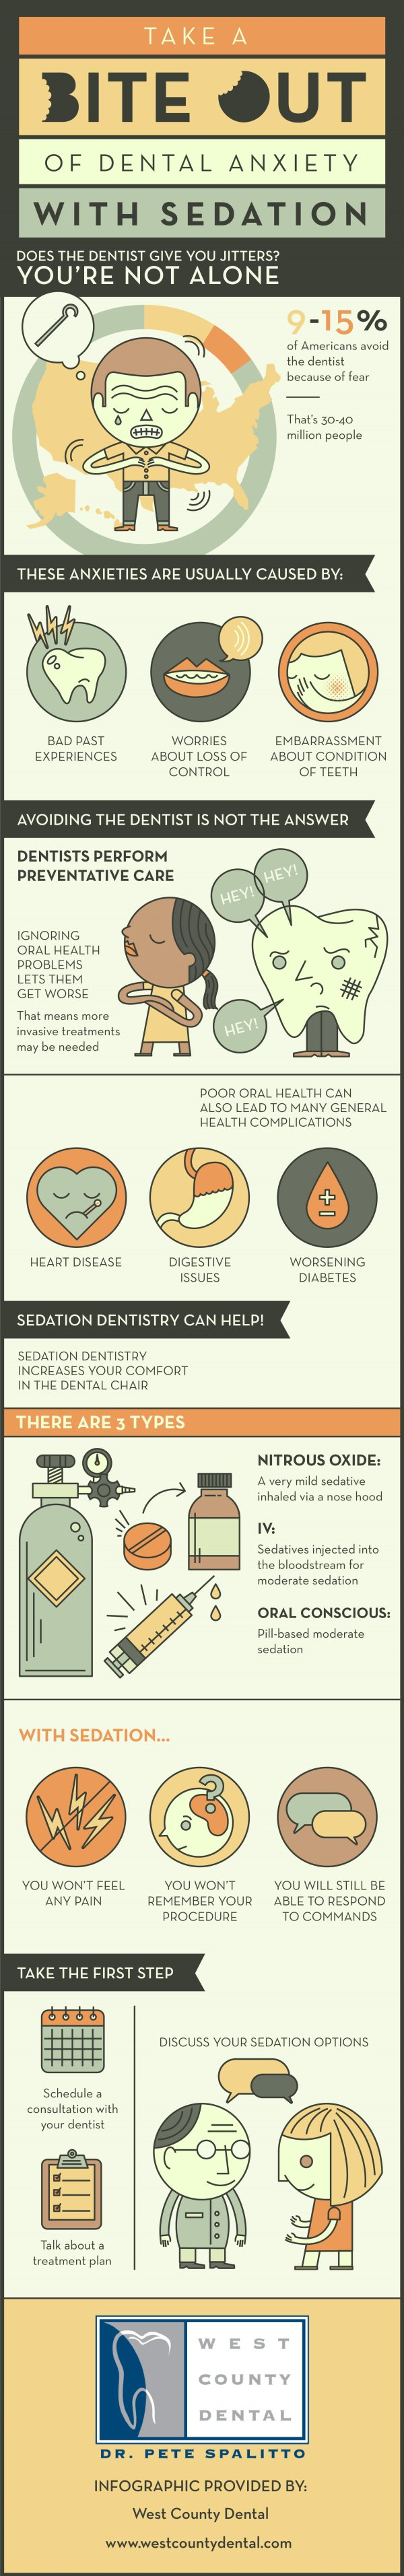 Dental Anxiety with Sedation [INFOGRAPHIC]